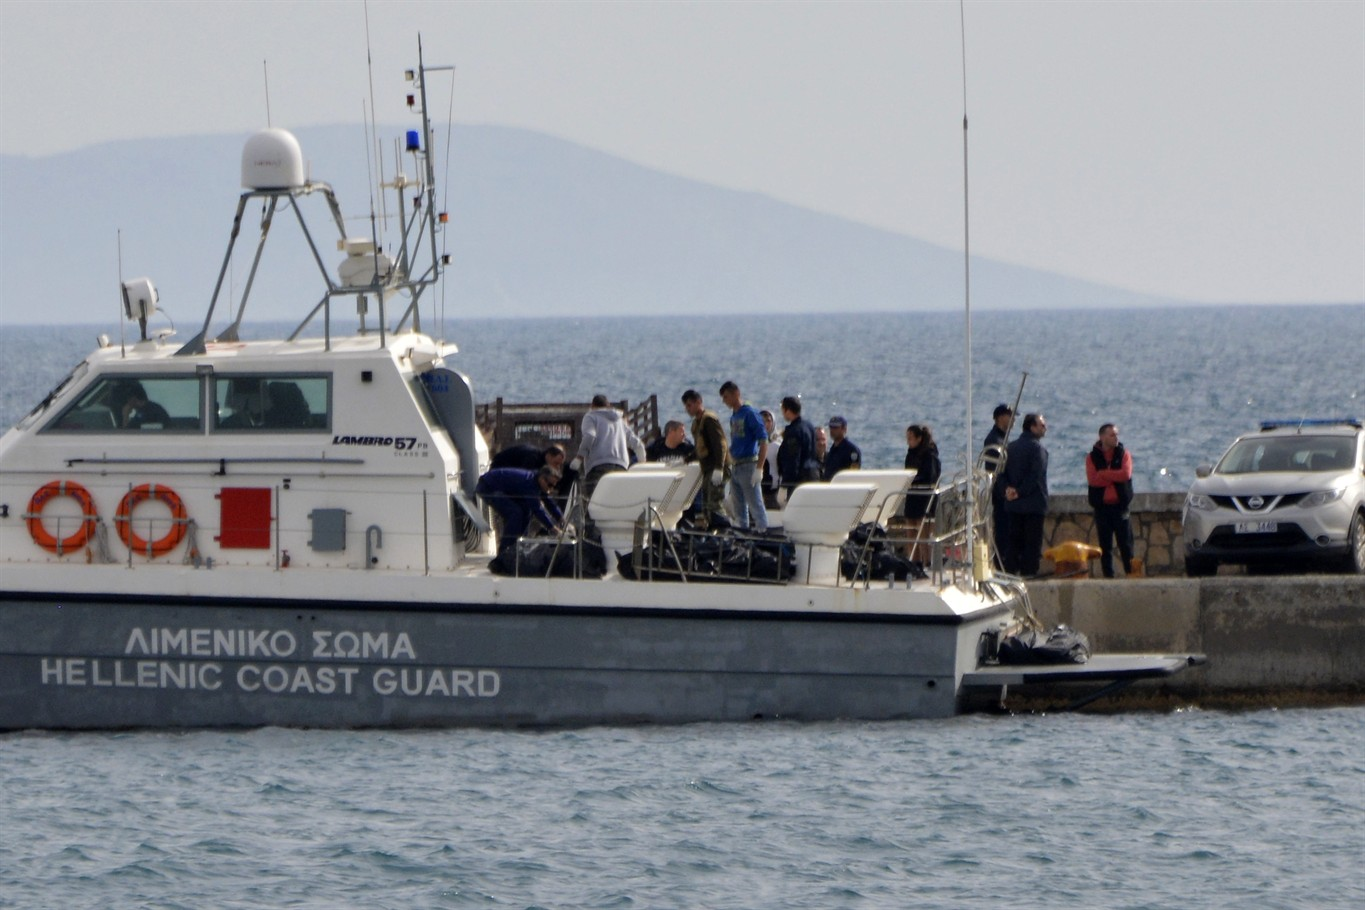 Six dead after suspected migrant boat sinking in Aegean Sea